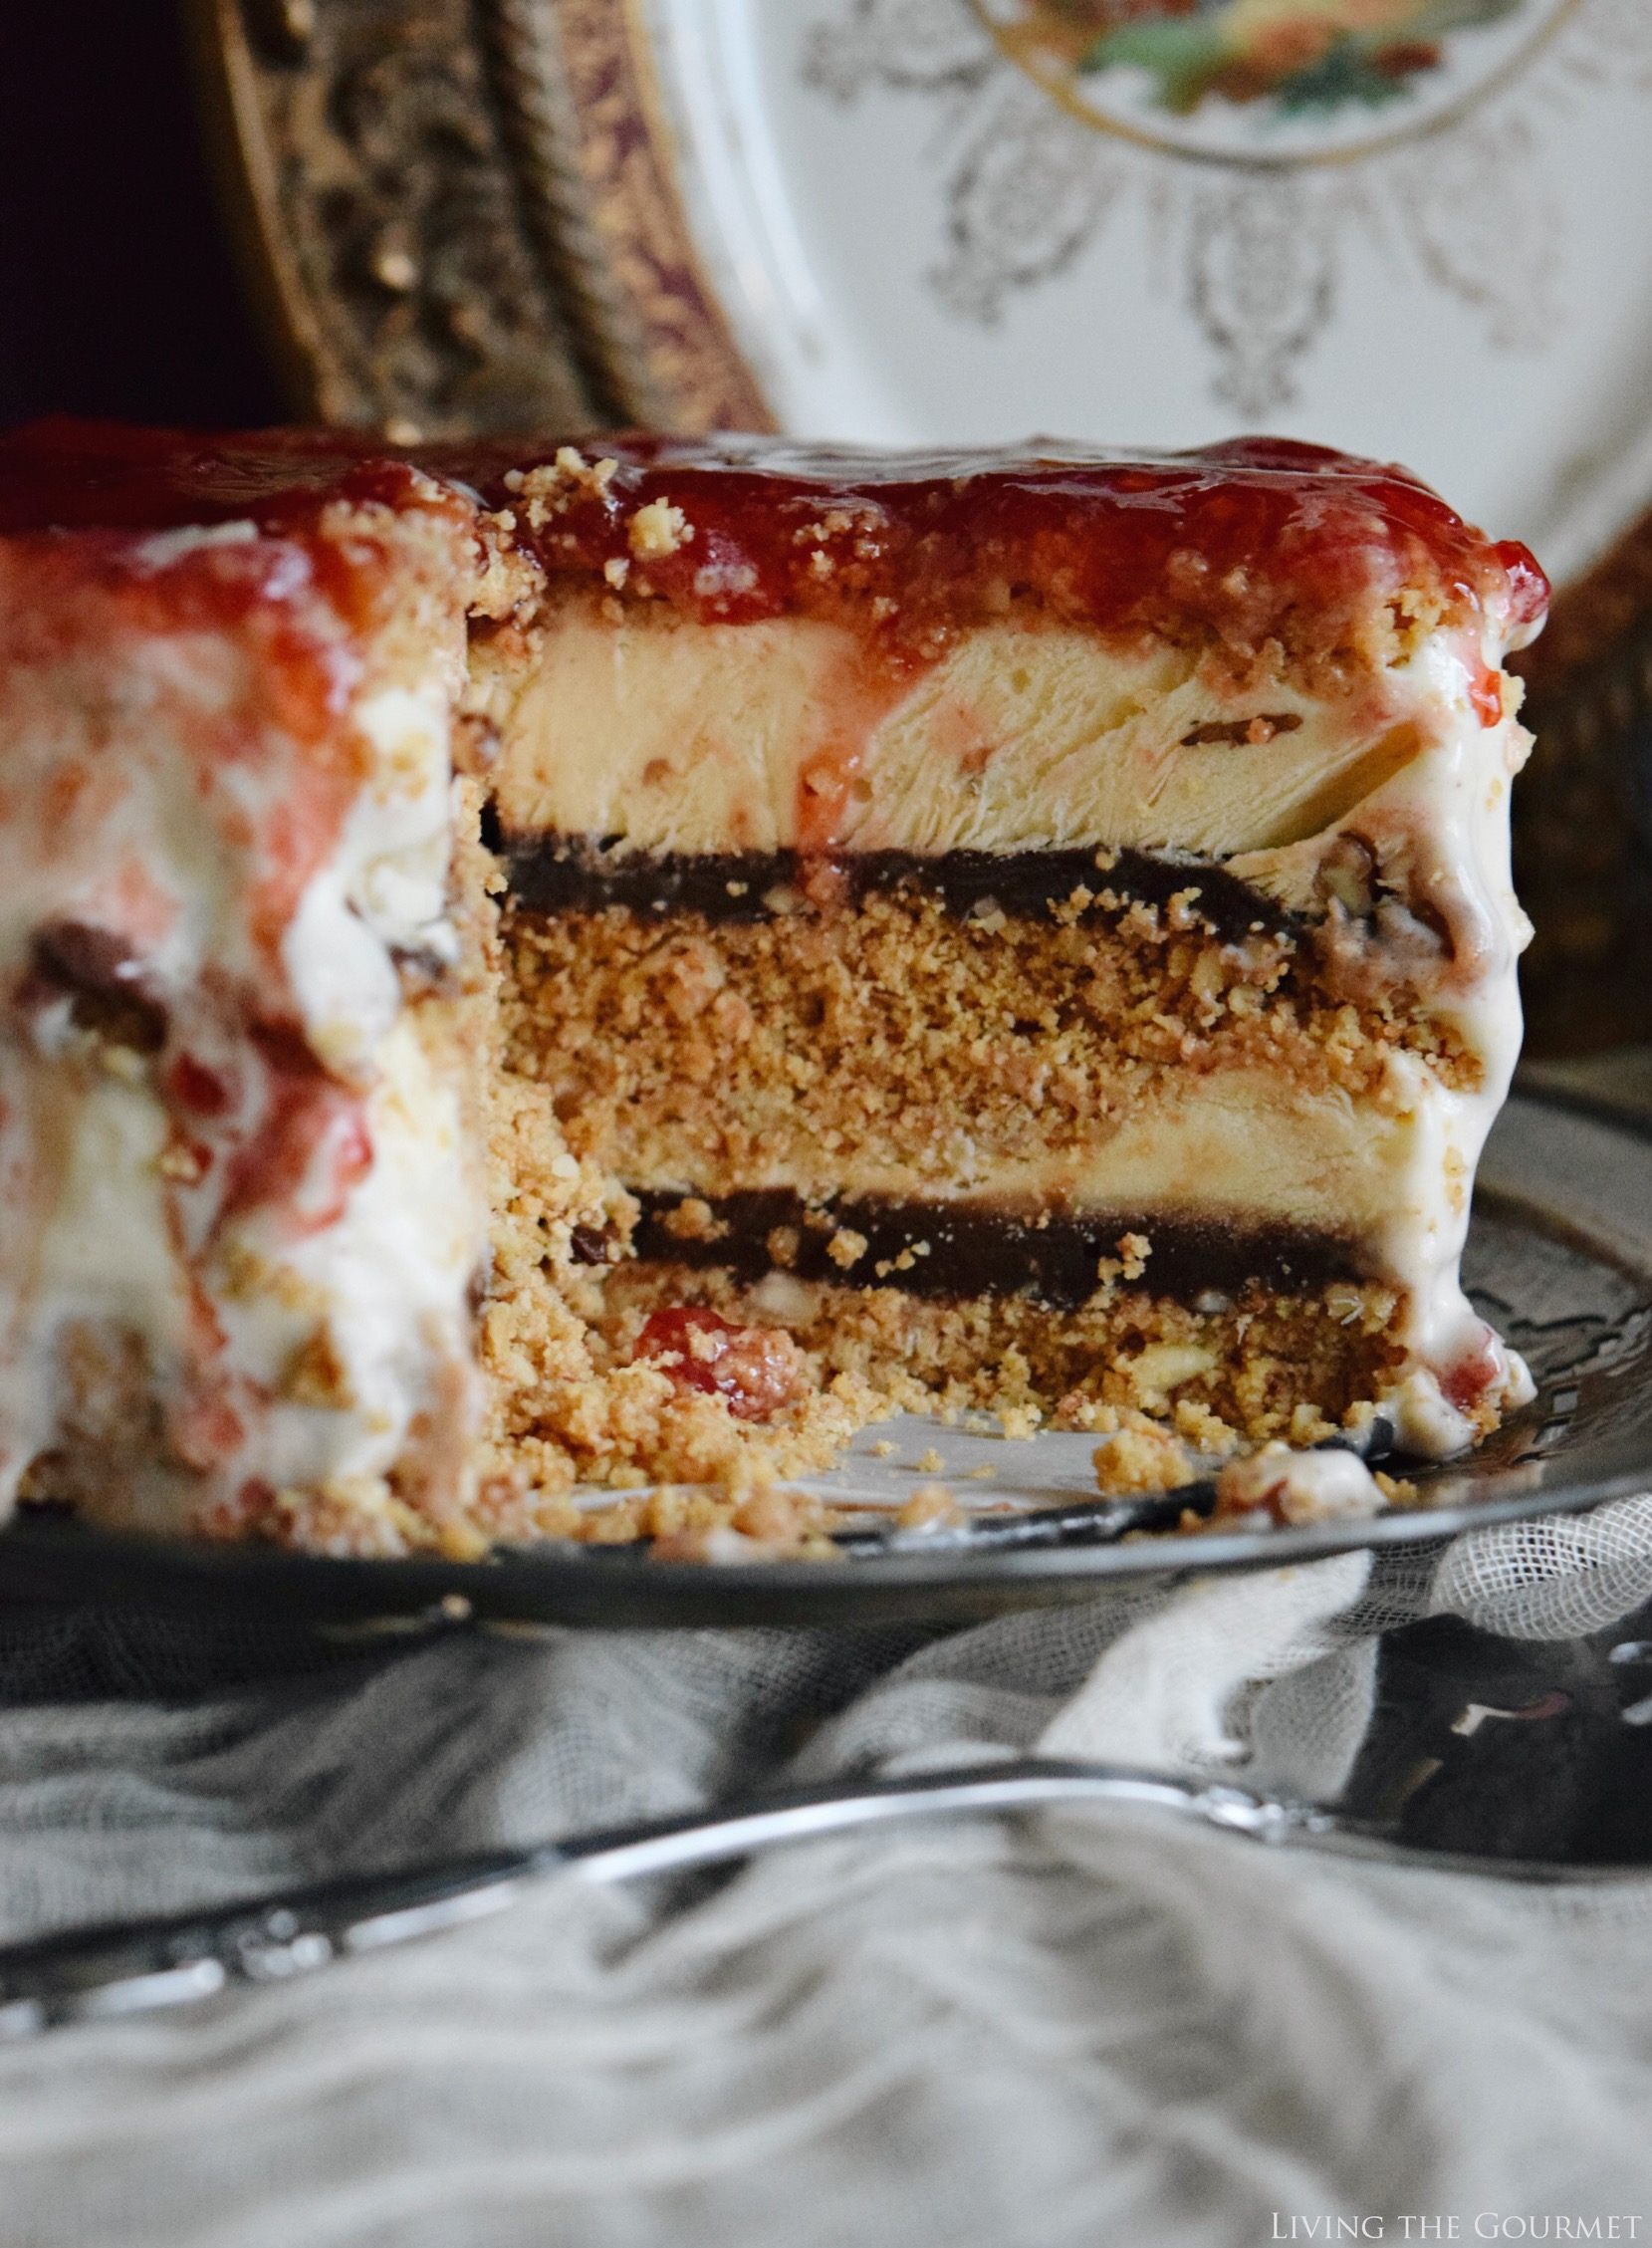 Living the Gourmet: Butter Pecan and Vanilla Ice Cream Cake | #SoHoppinGood #TopYourSummer #ad